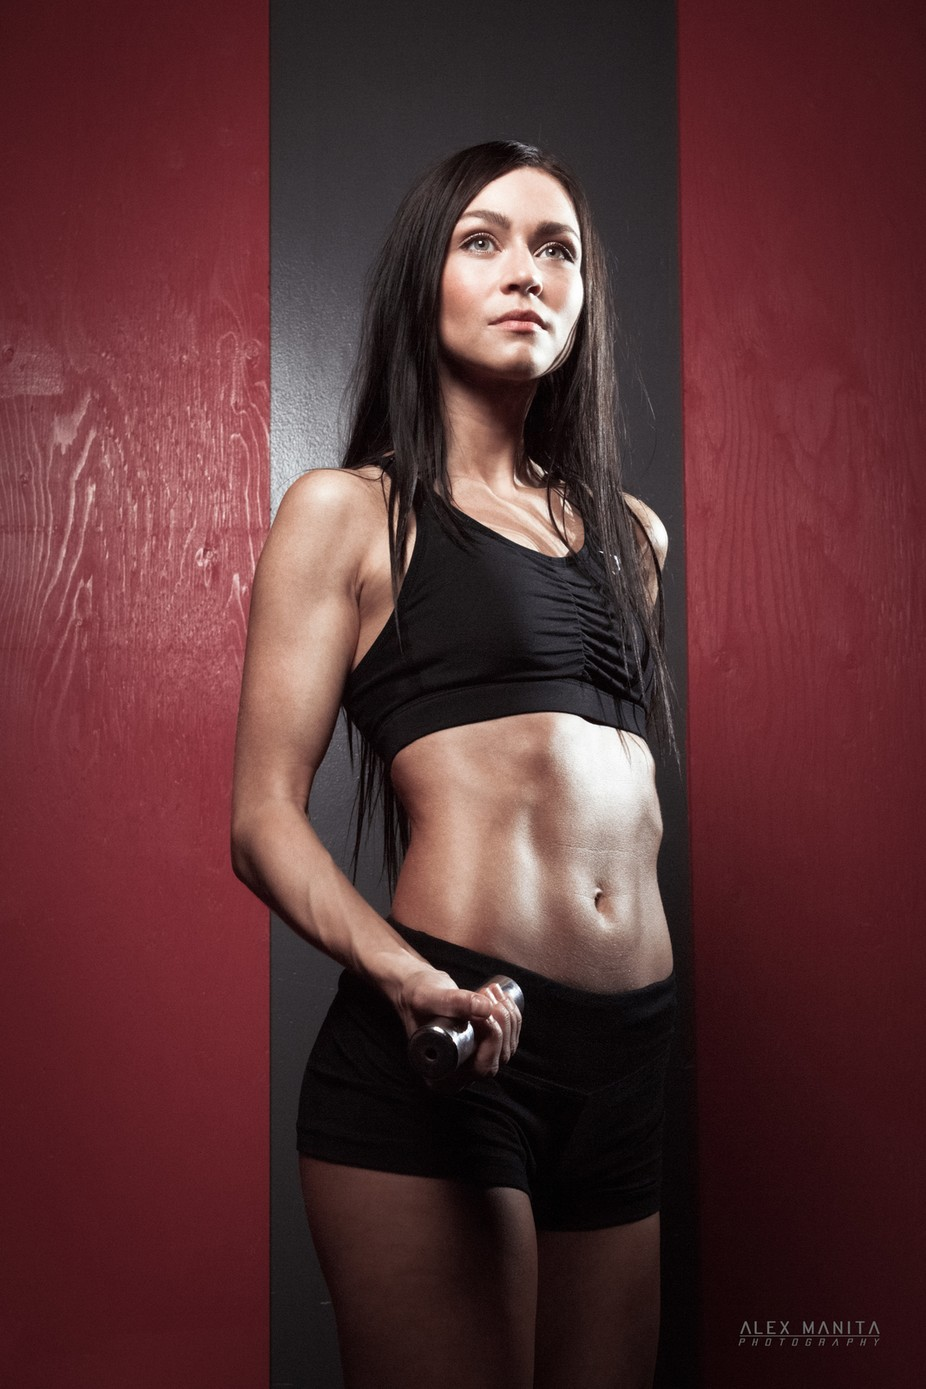 Fitness shoot by Alexmanita - Health And Fitness Photo Contest